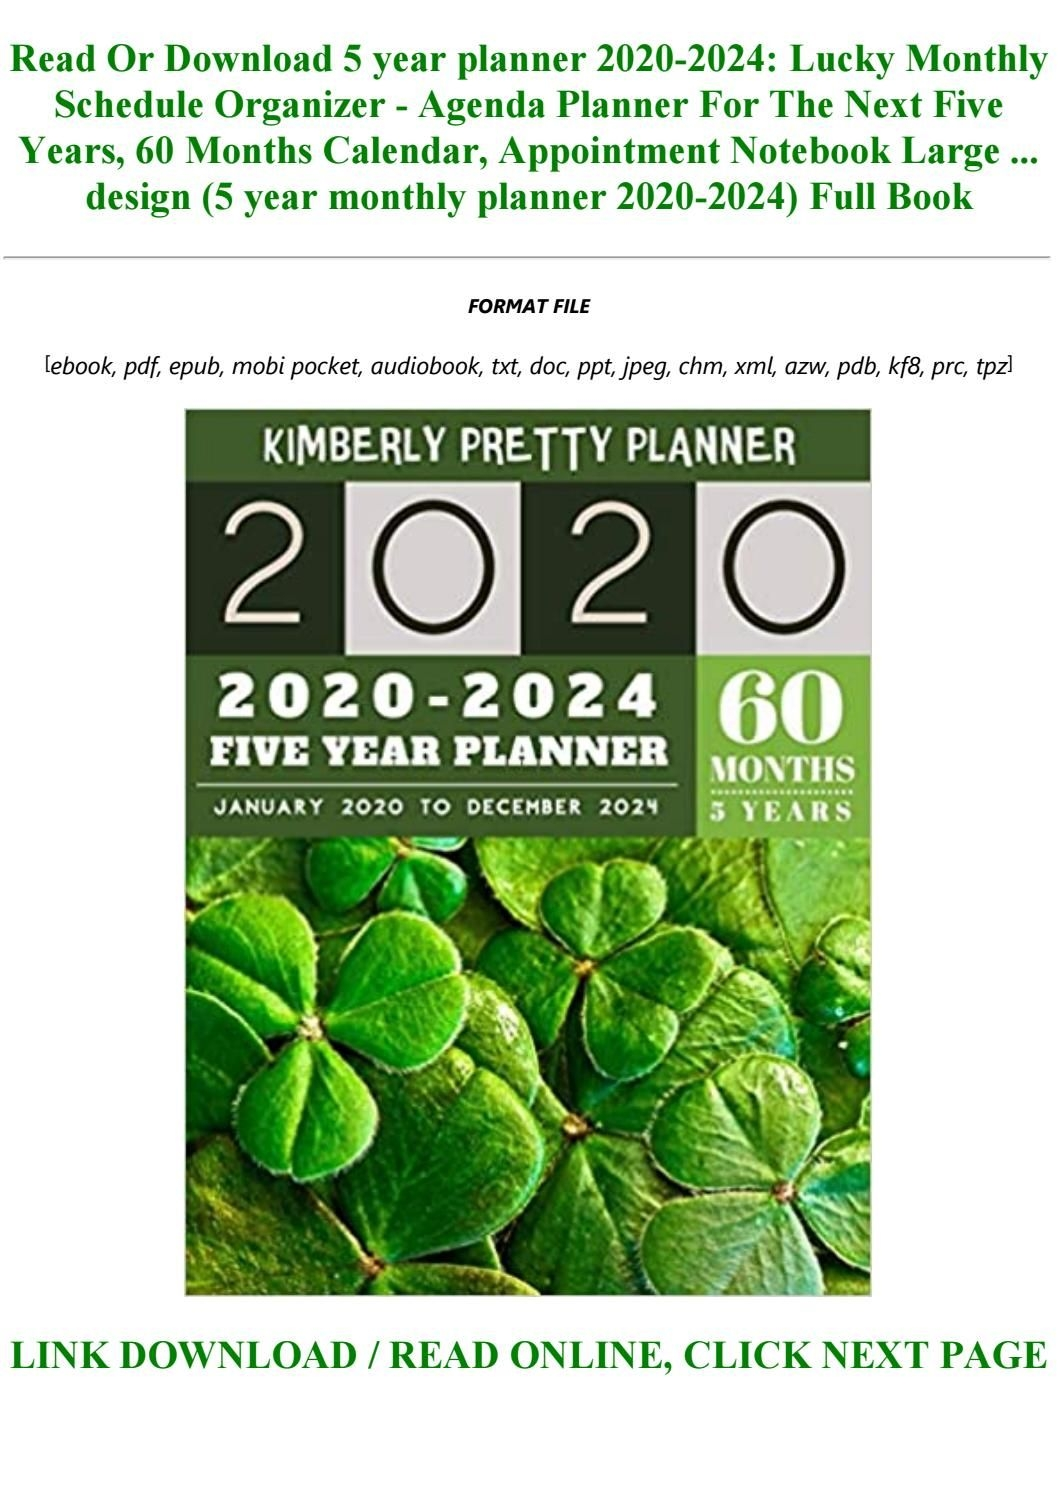 Readdownload 5 Year Planner 2020 2024: Lucky Monthly